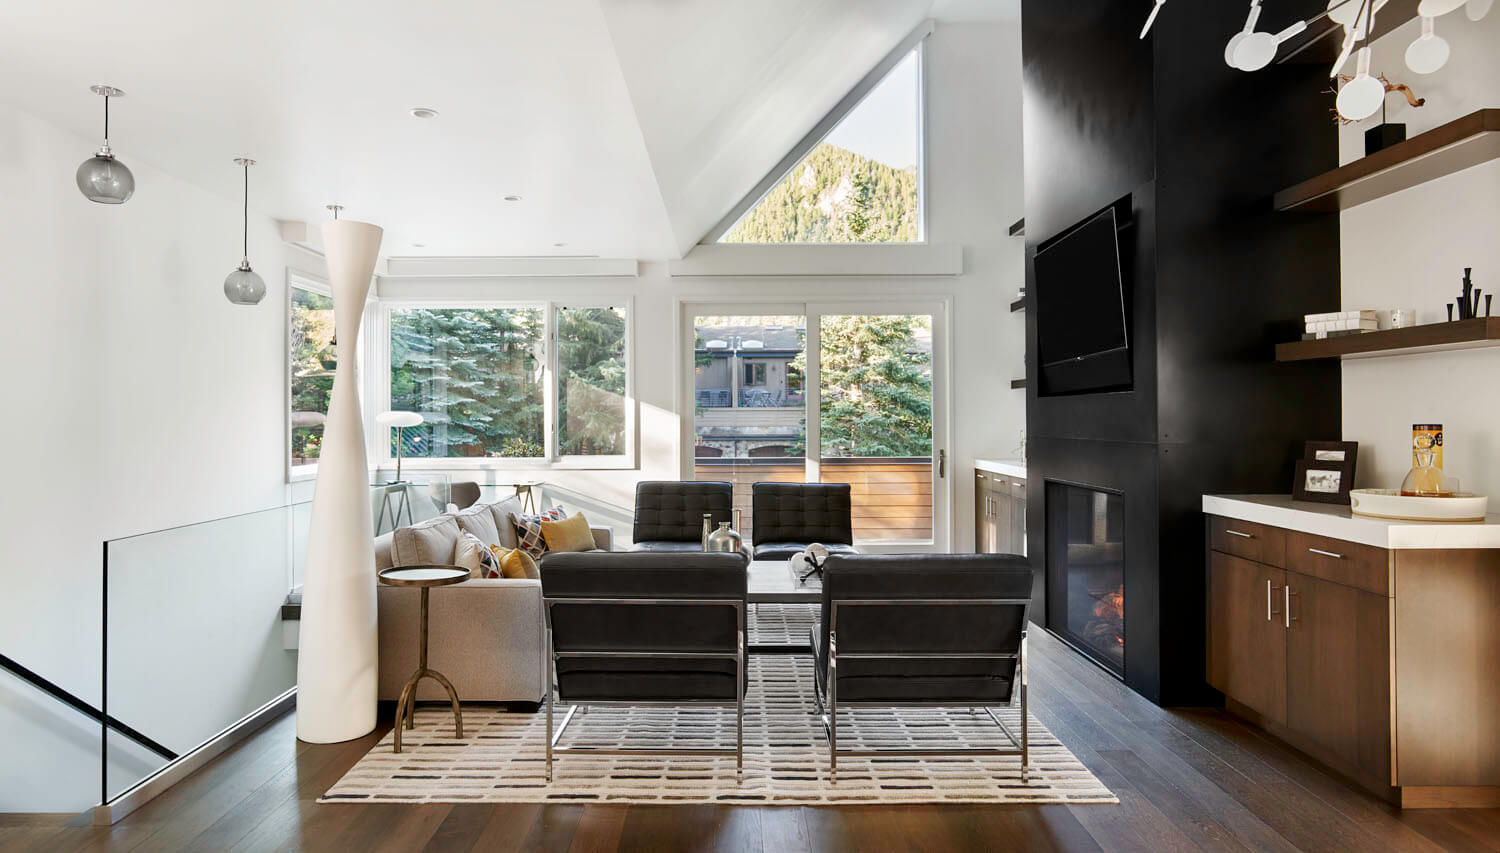 Aspen Duplex designed by Brewster McLeod Architects